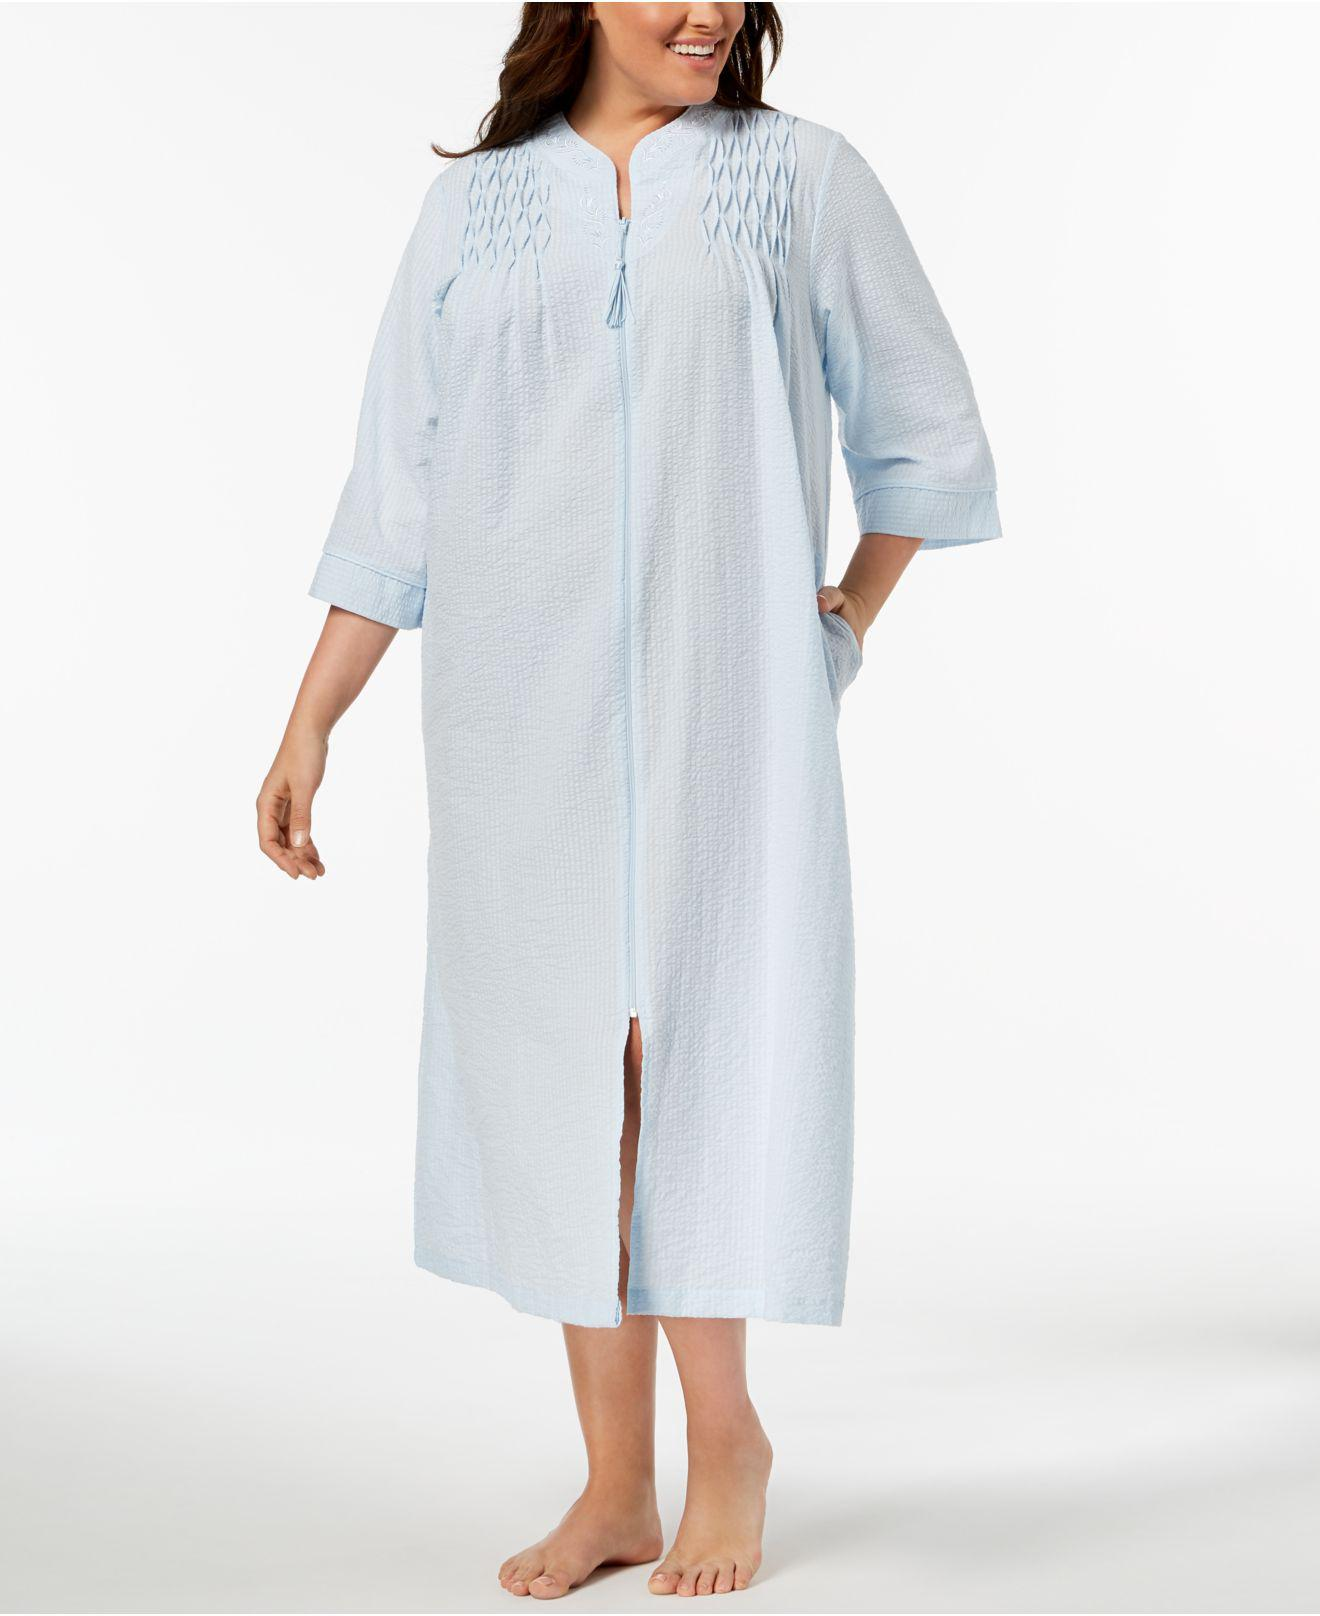 416b5ba346e32 Lyst - Miss Elaine Plus Size Embroidered Seersucker Zip Robe in Blue